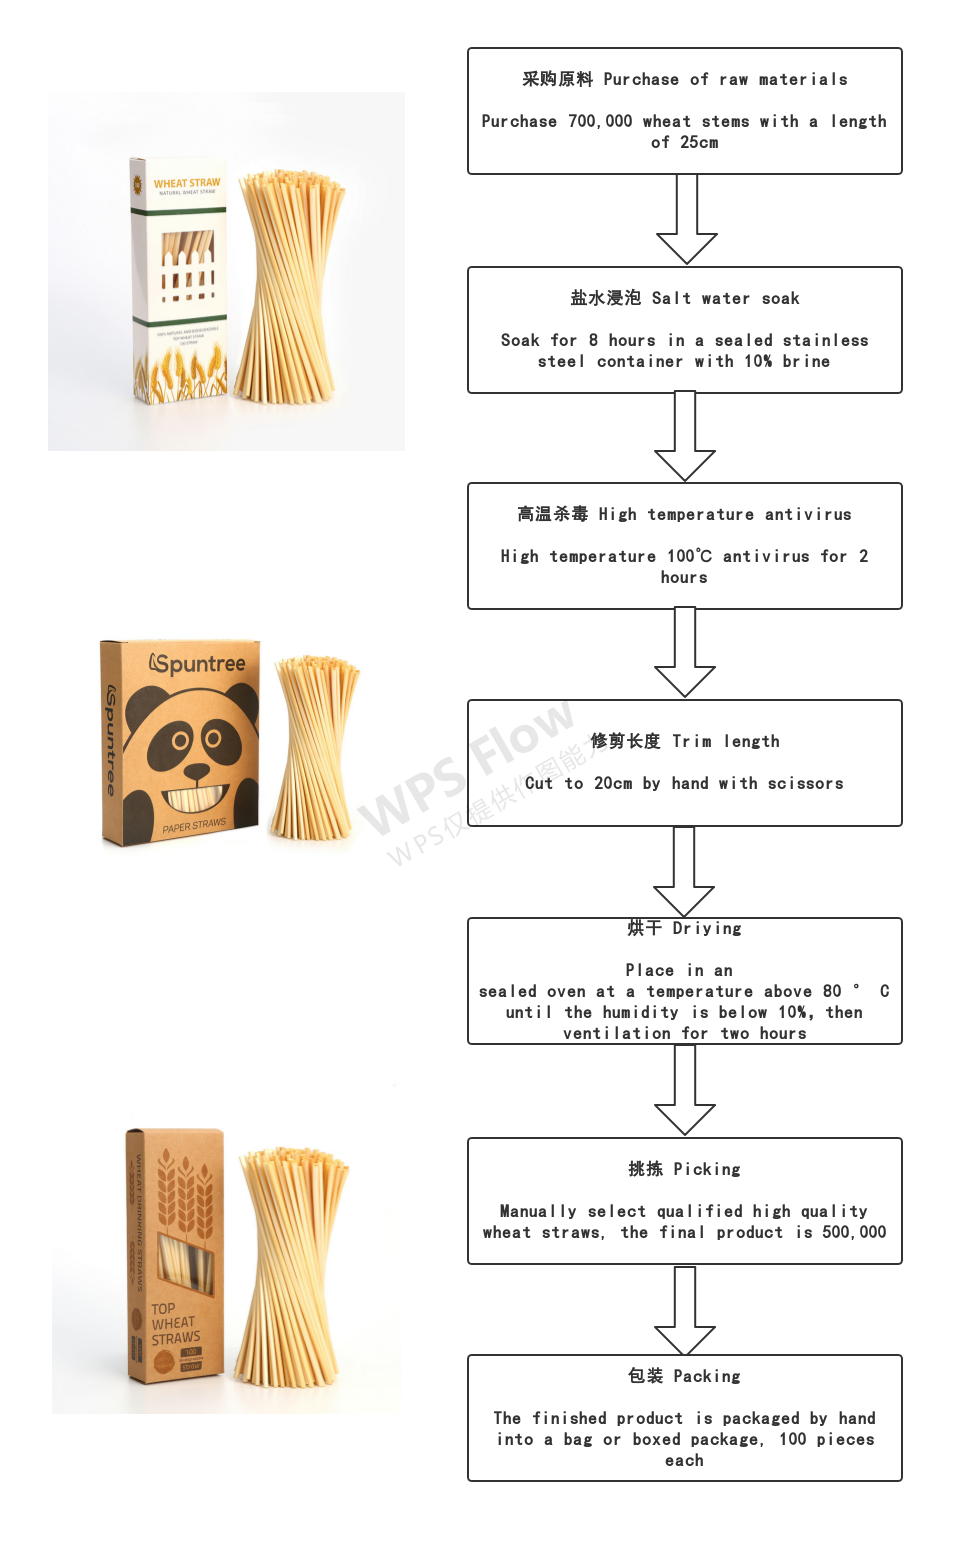 How is the wheat straw made?